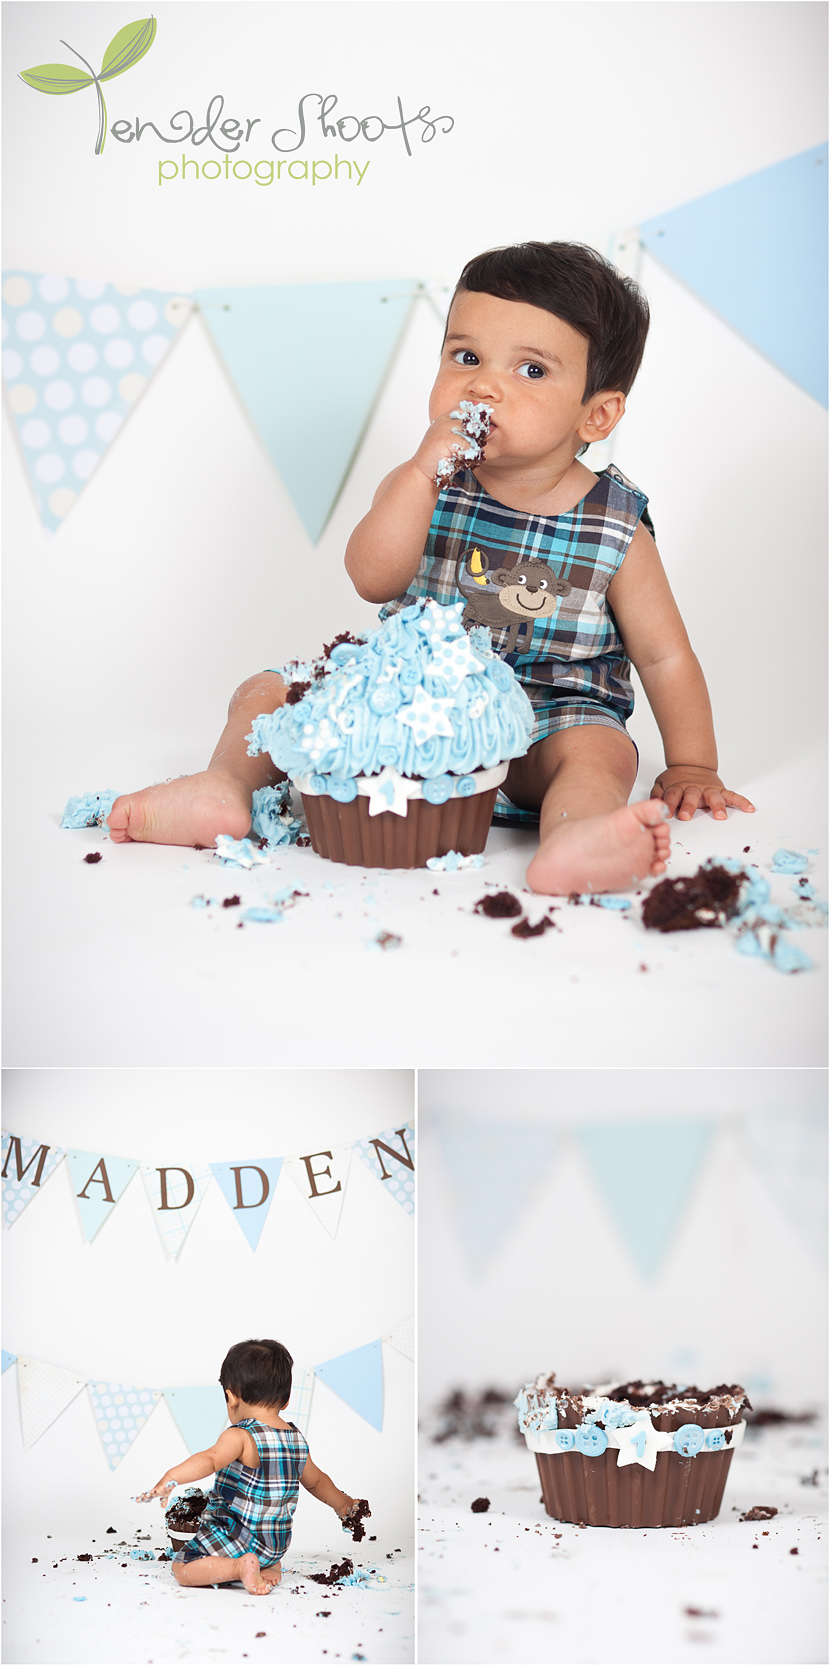 Madden's 1st Birthday cake smash